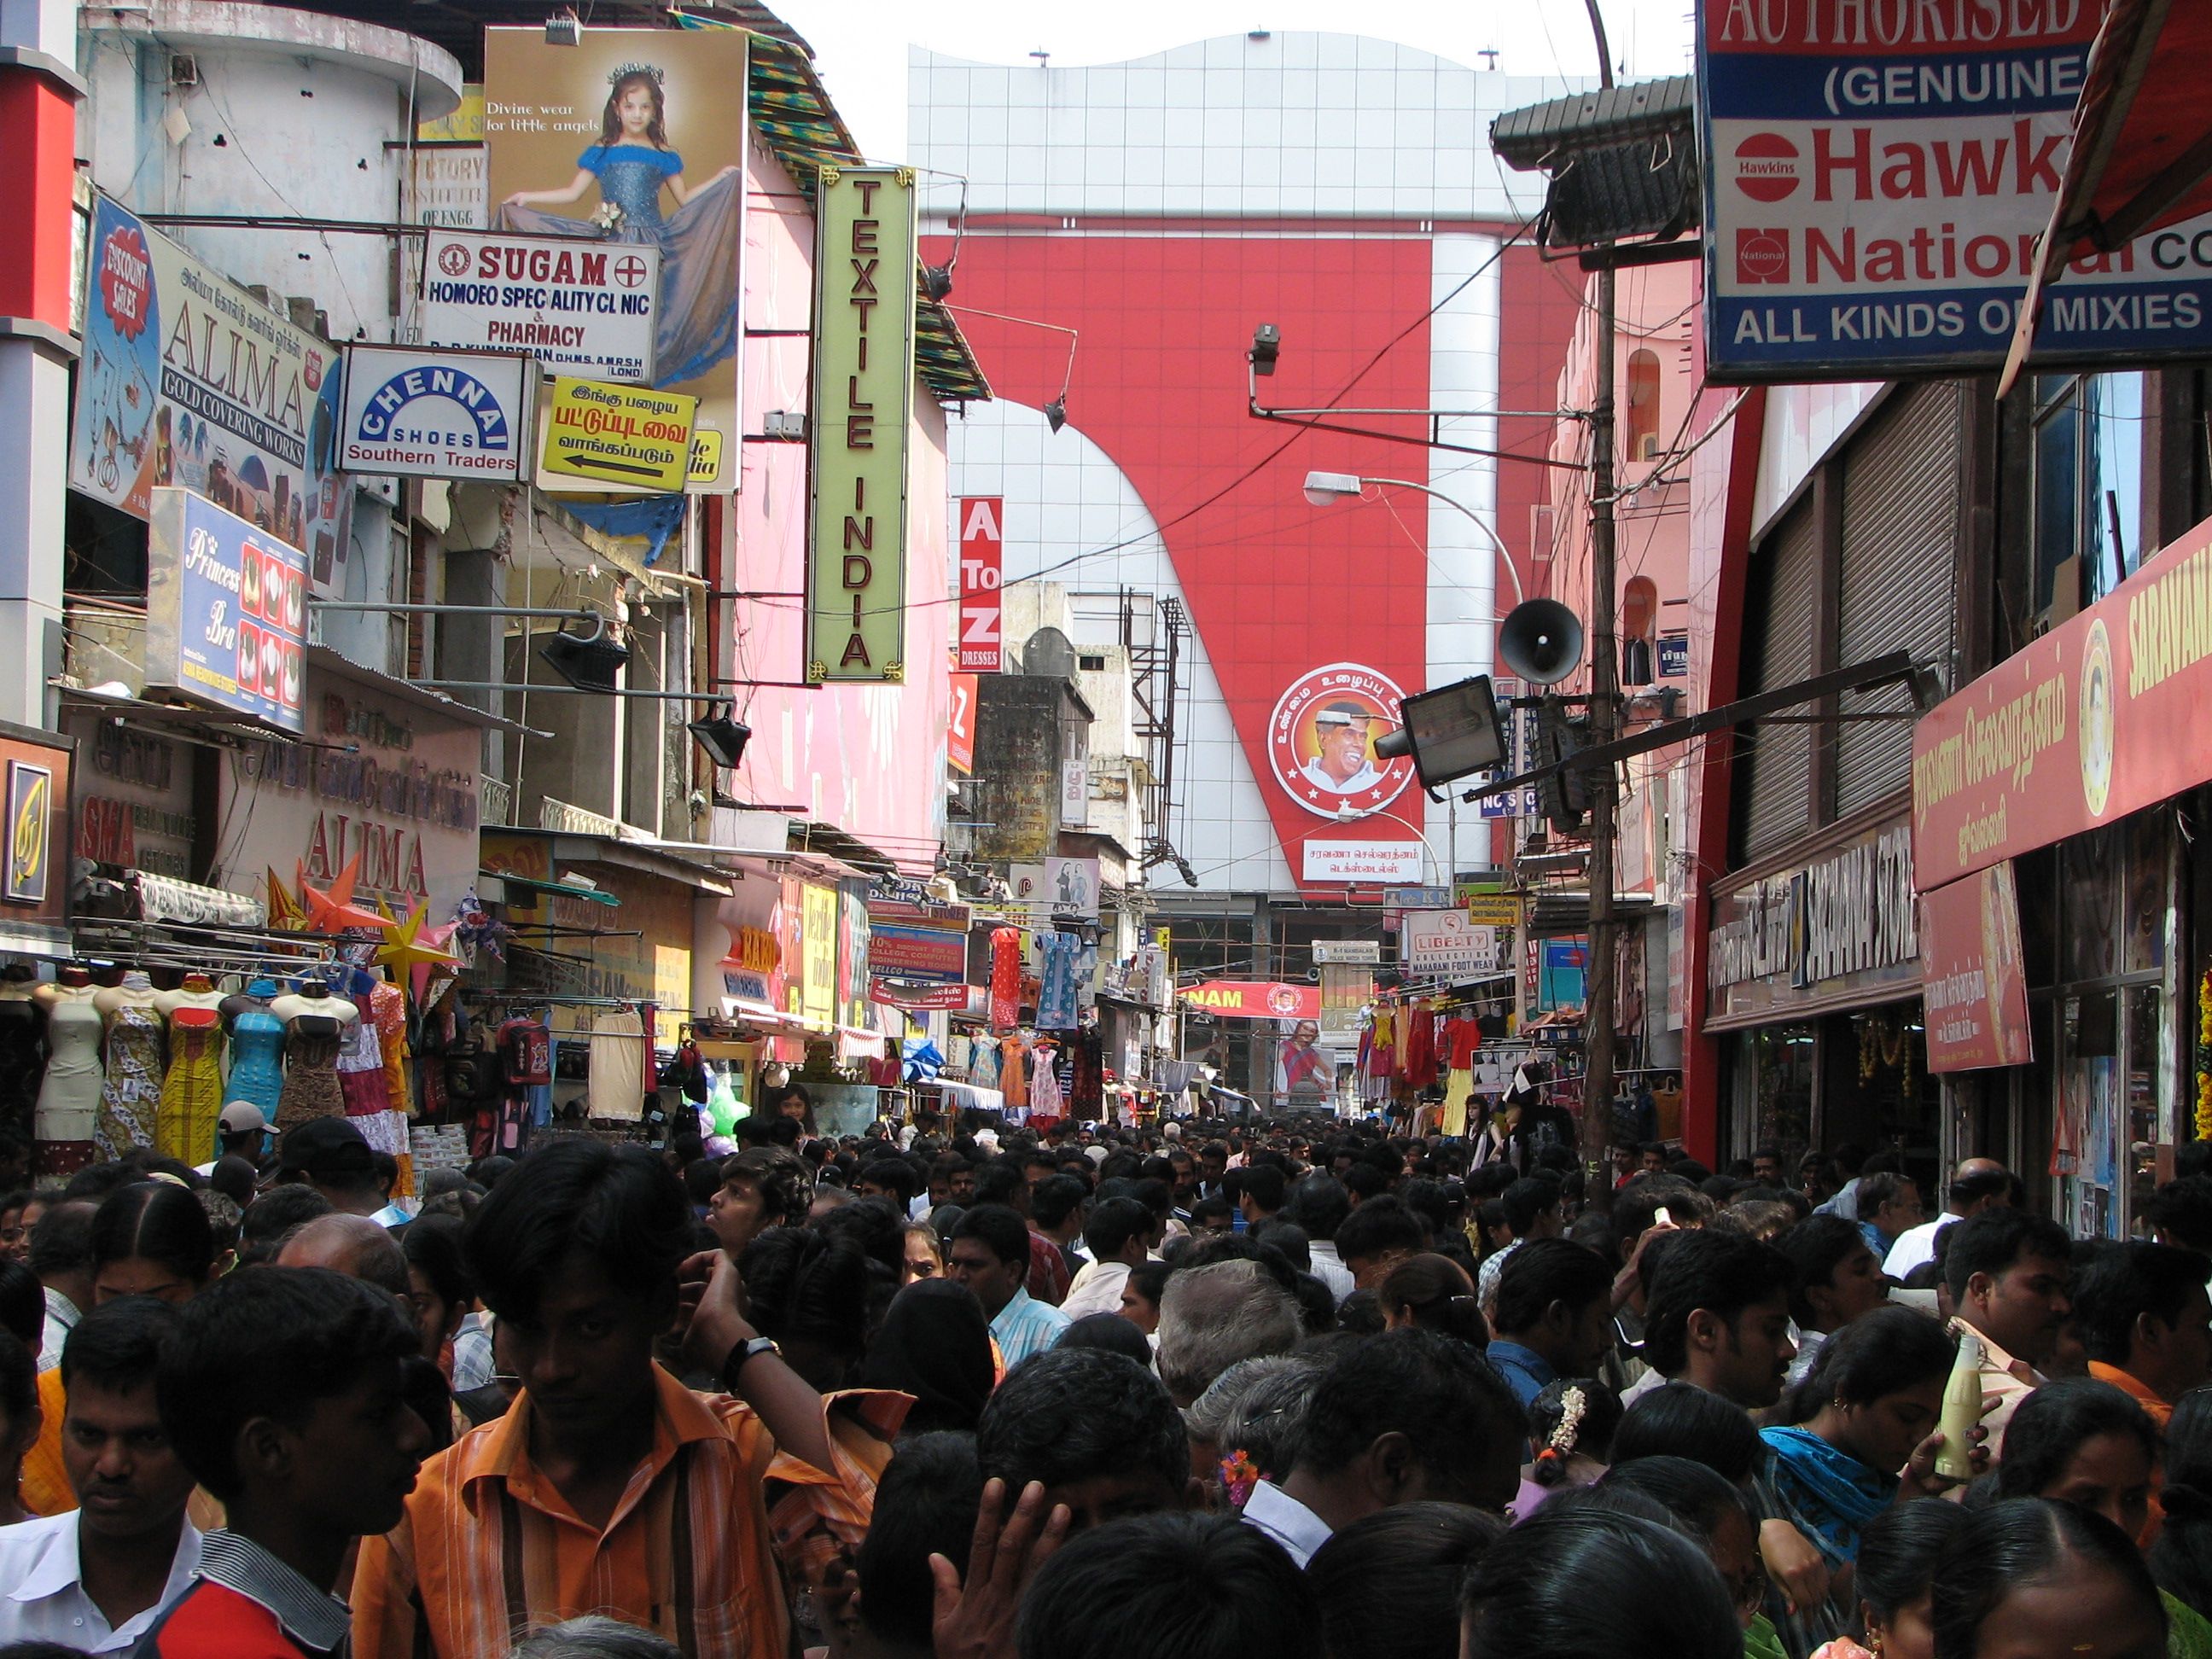 india_sights_culture_002_crowd_shopping_342046315.jpg